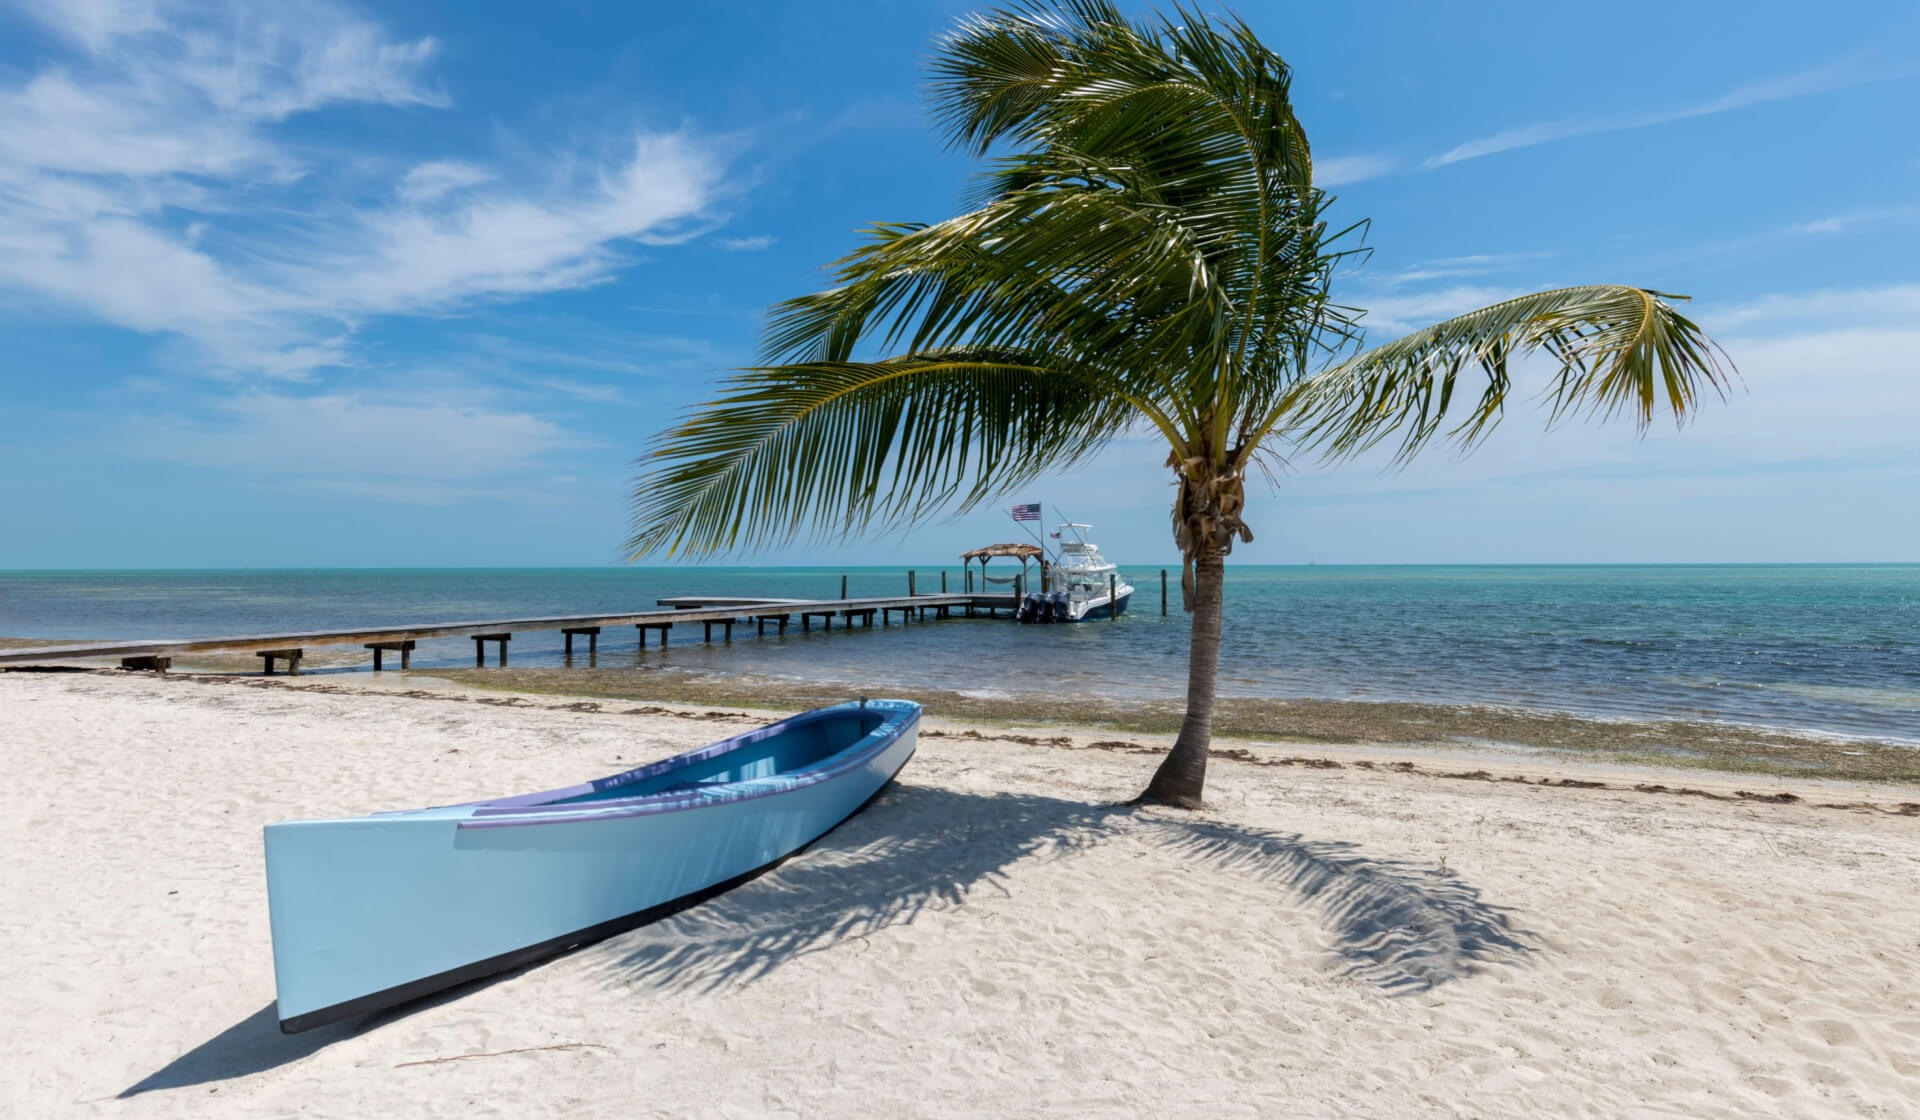 Small blue boat and palm tree on a beautiful tropical beach next to a pier in Florida